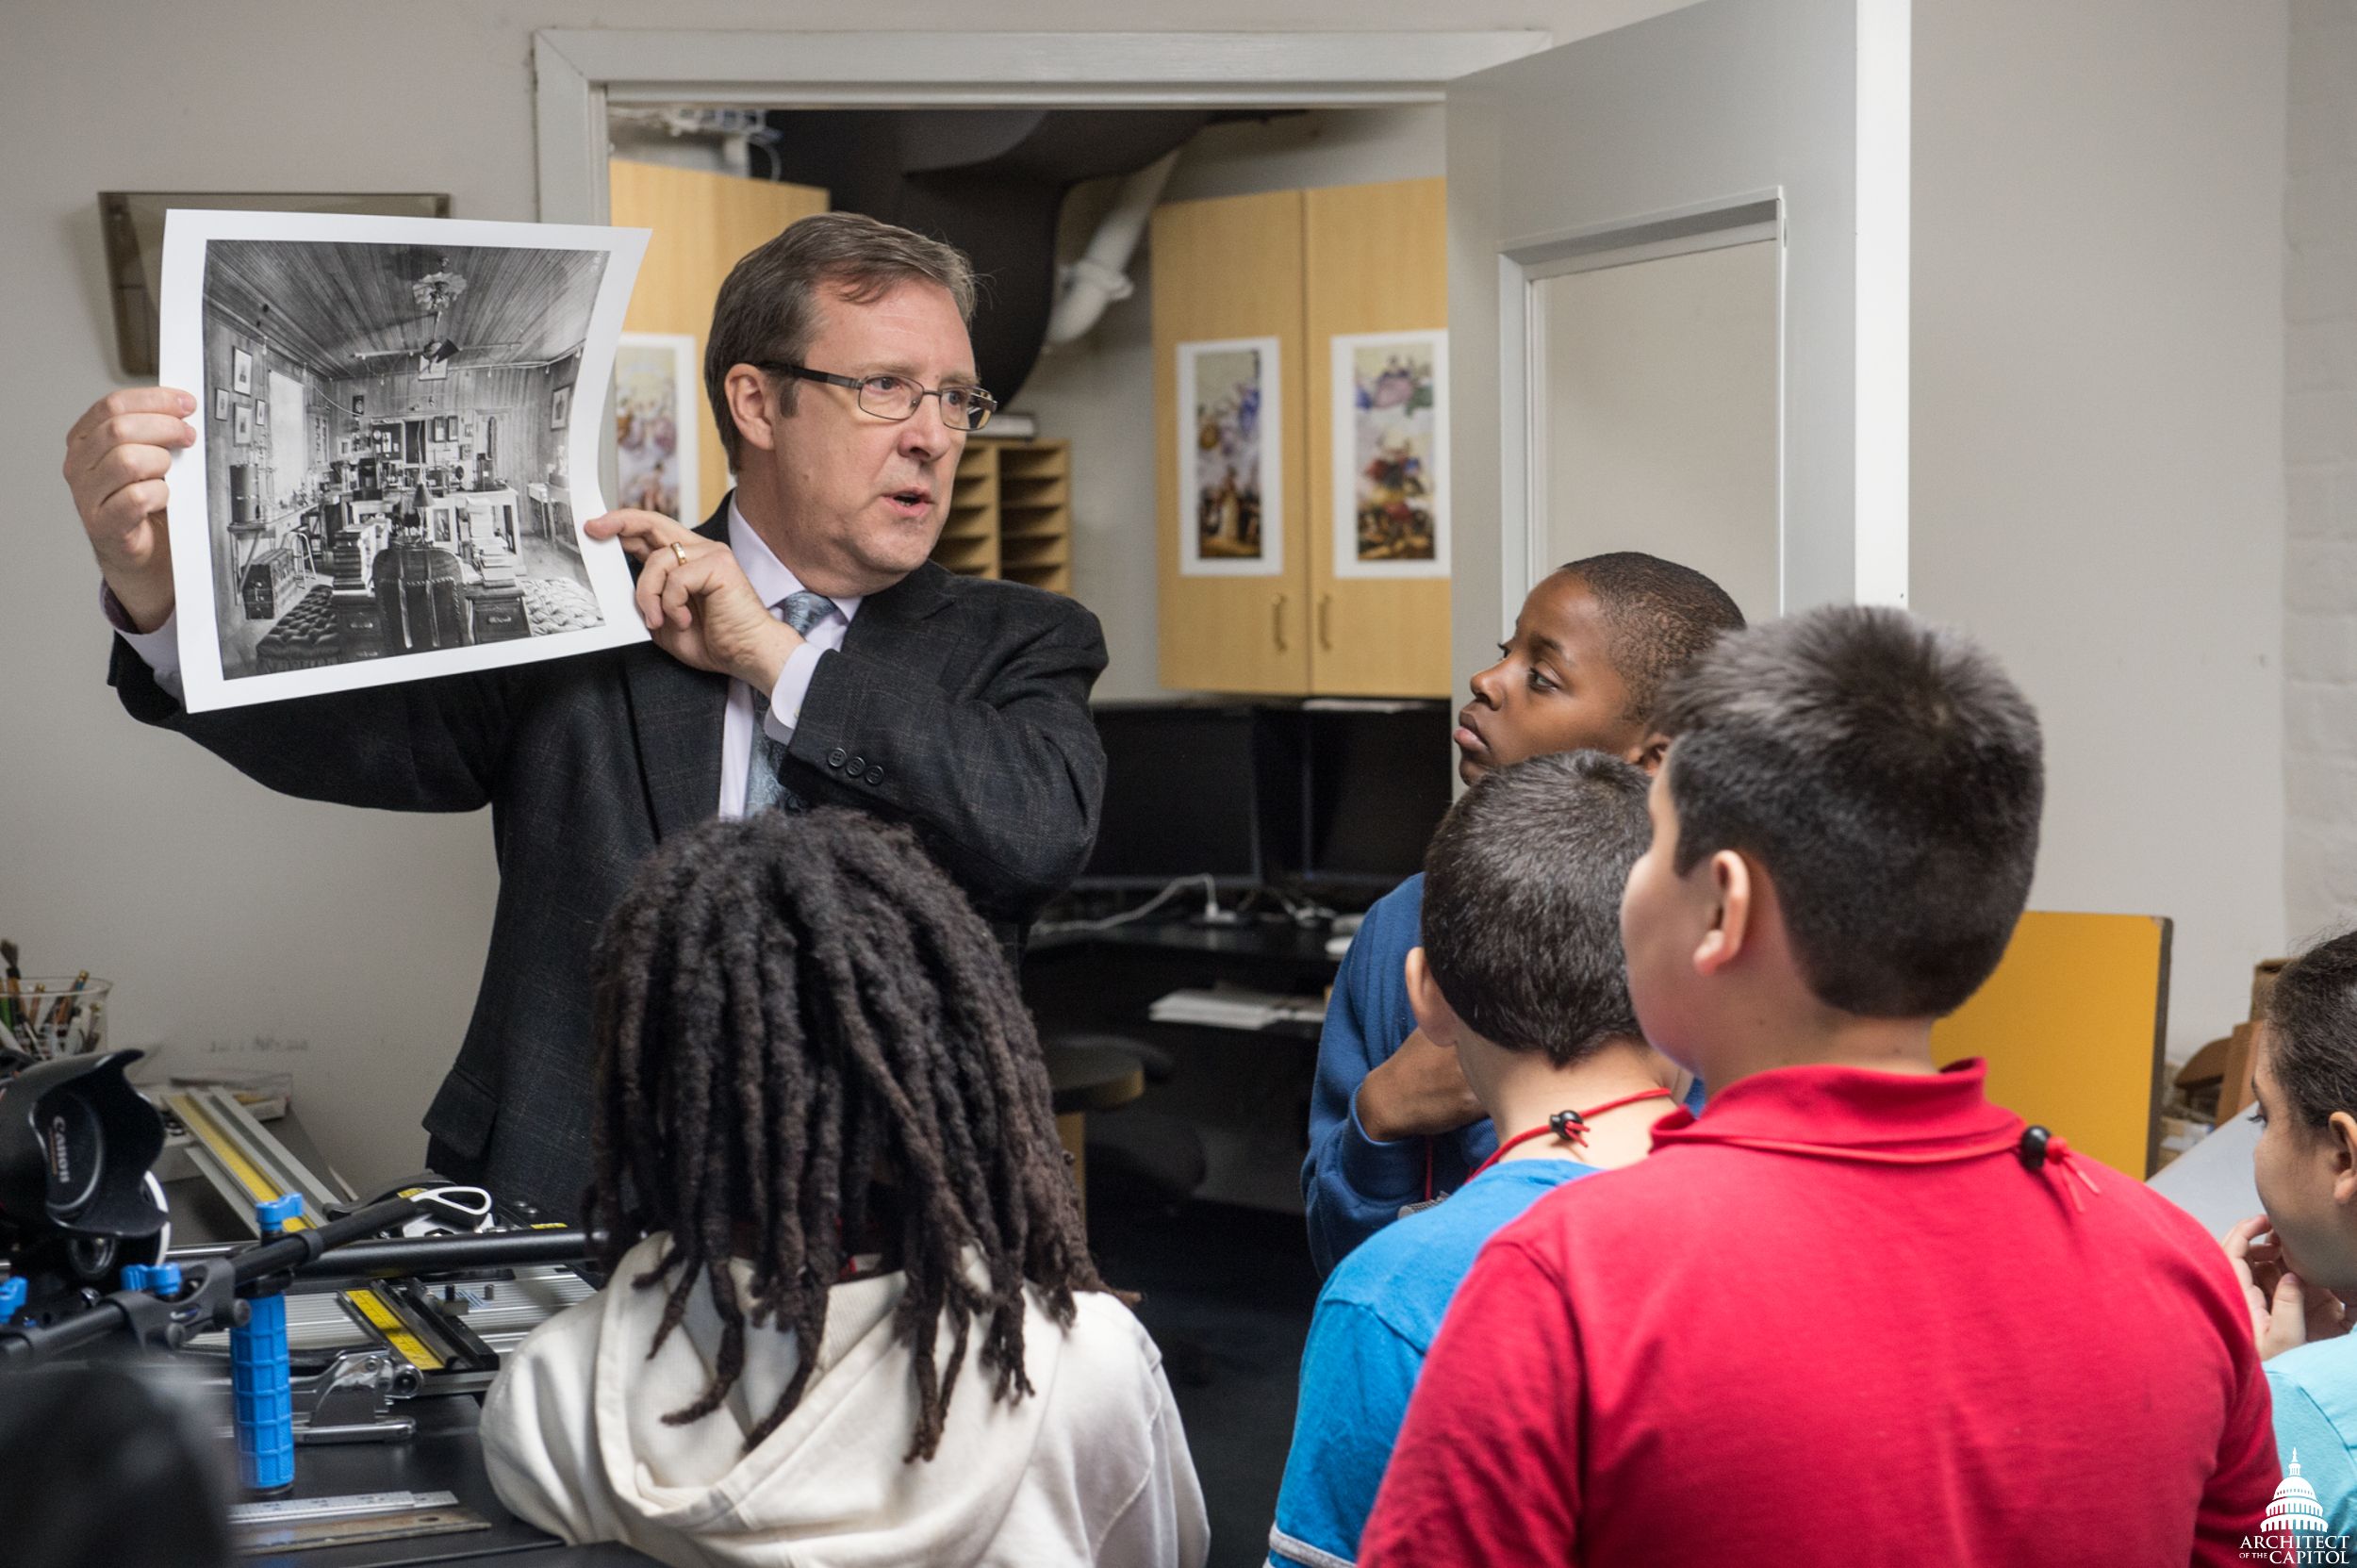 Dunn teaches children about working as a professional photographer.